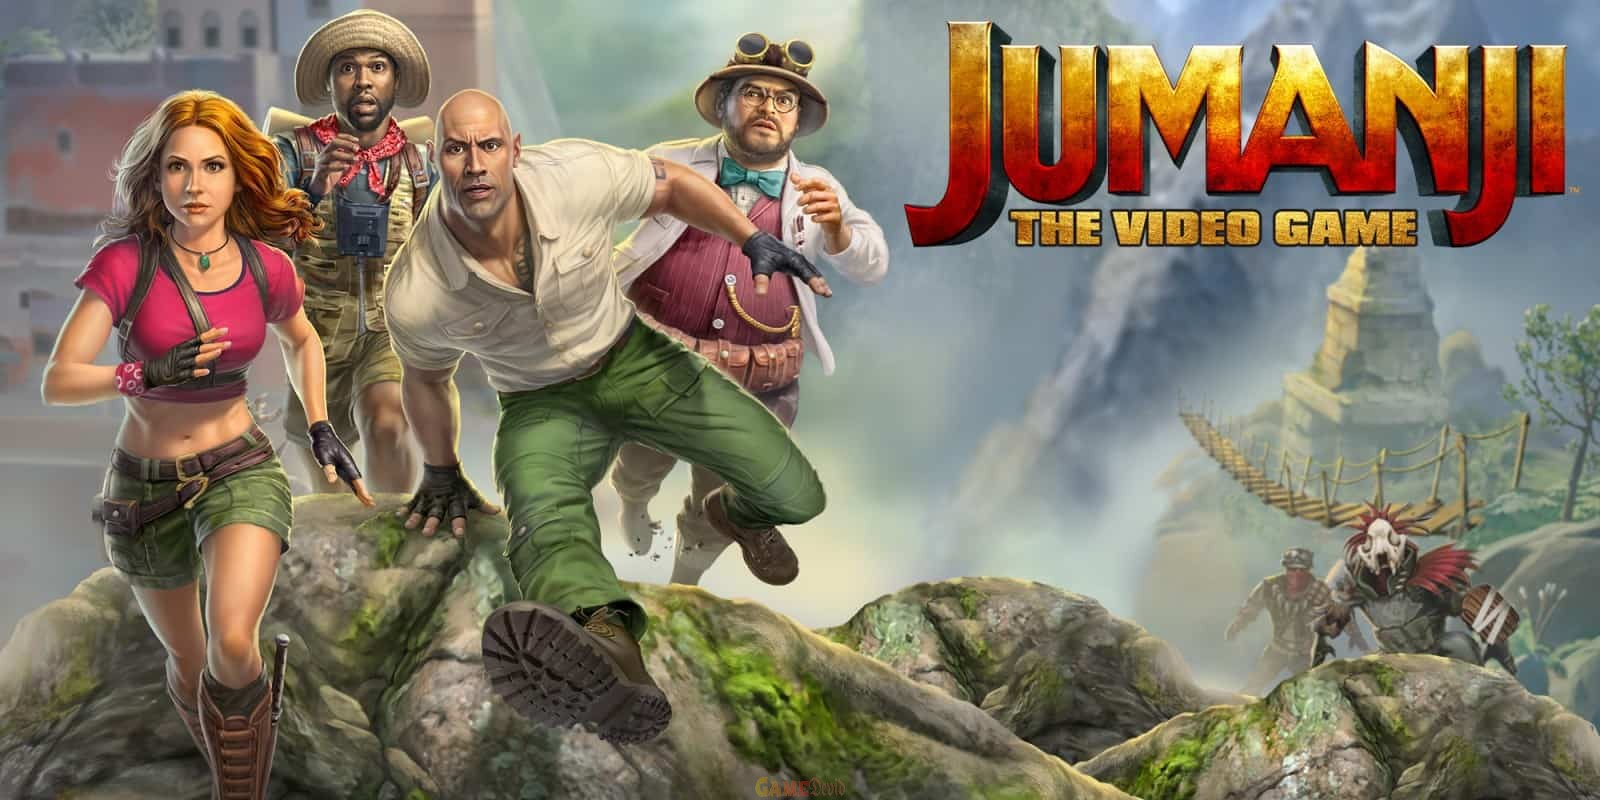 Jumanji: The Videogame PC Game Latest Version Download Now